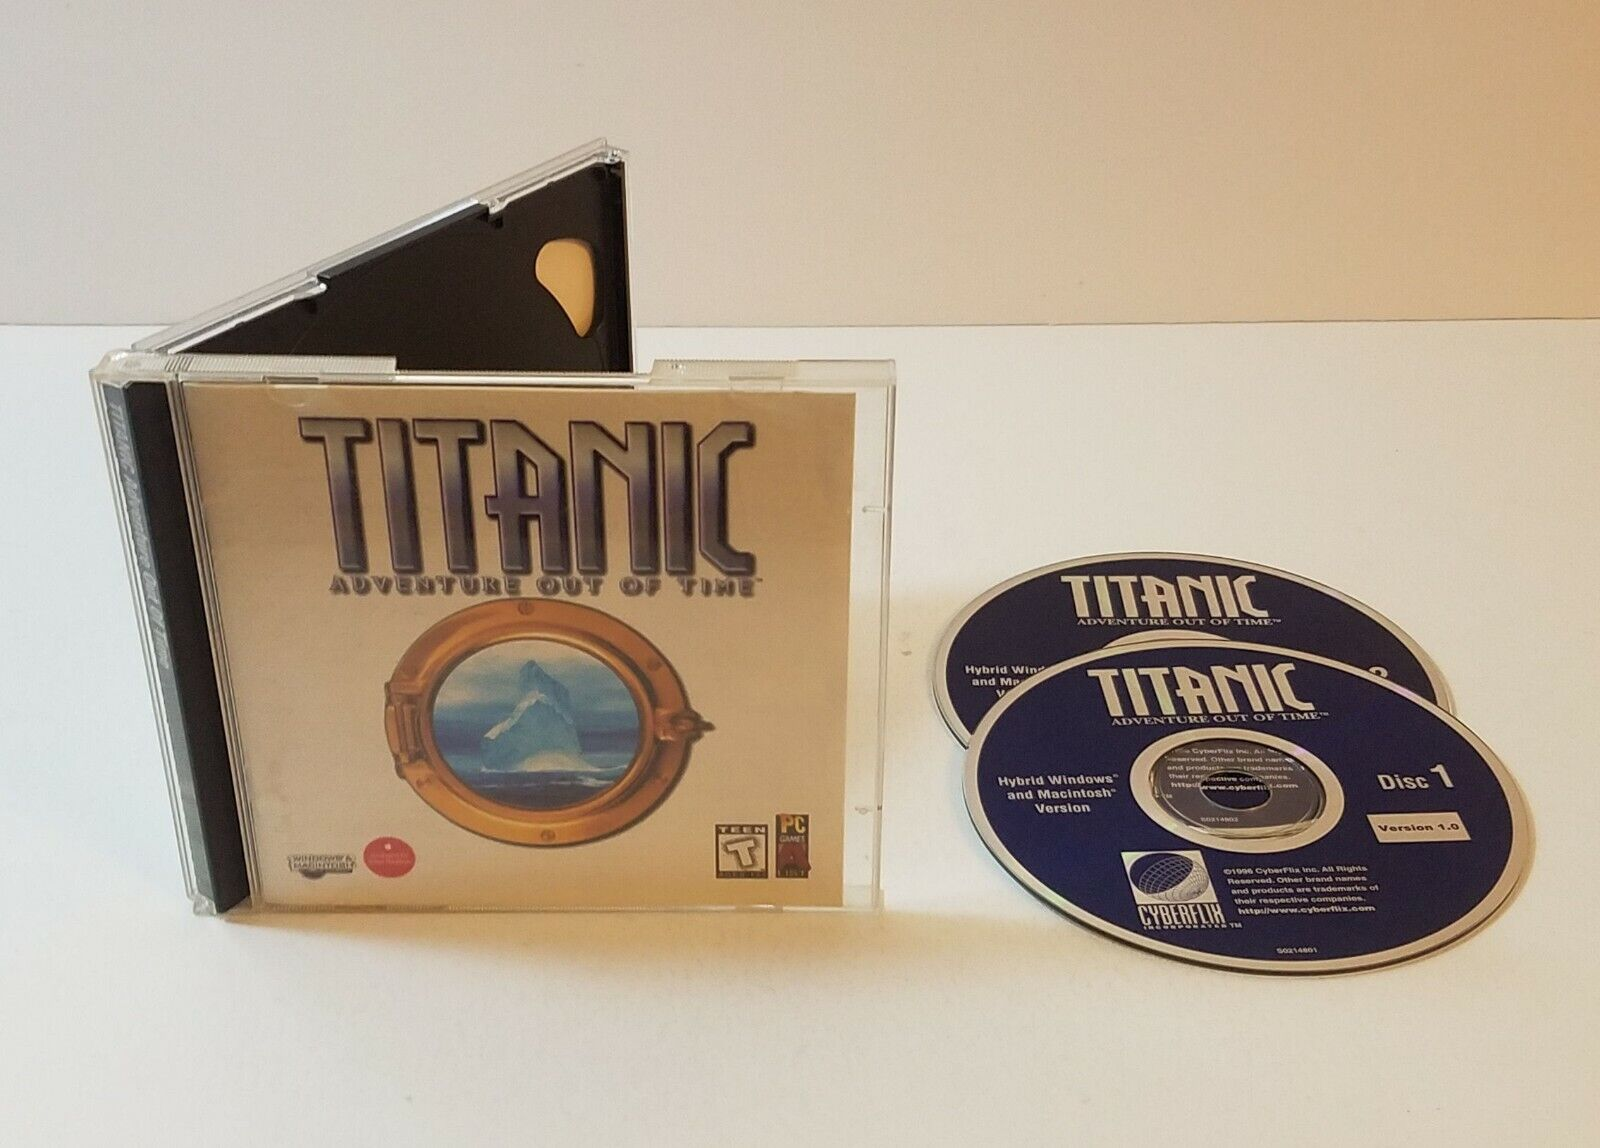 Titanic Adventure Out Of Time PC CD-Rom 1996 Windows Mac Adventure Game - $11.65